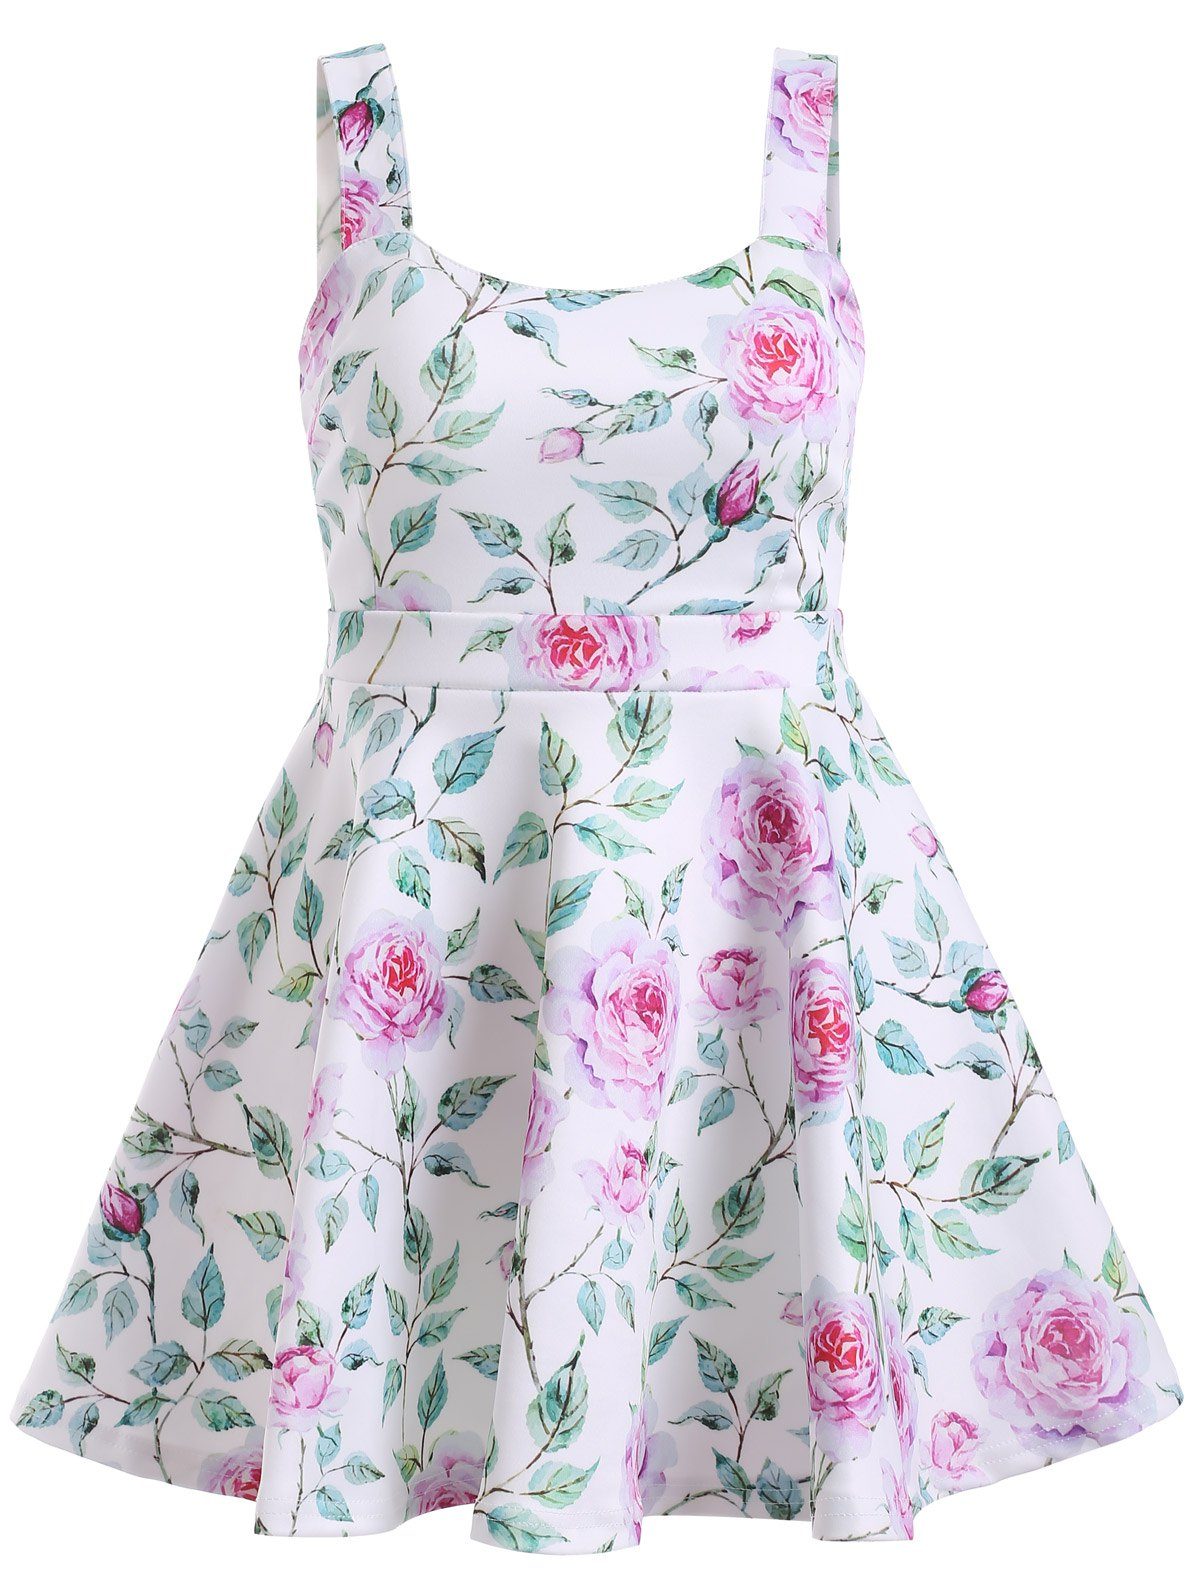 Graceful Women's Open Back Floral Print Flare Dress - PINK / GREEN ONE SIZE